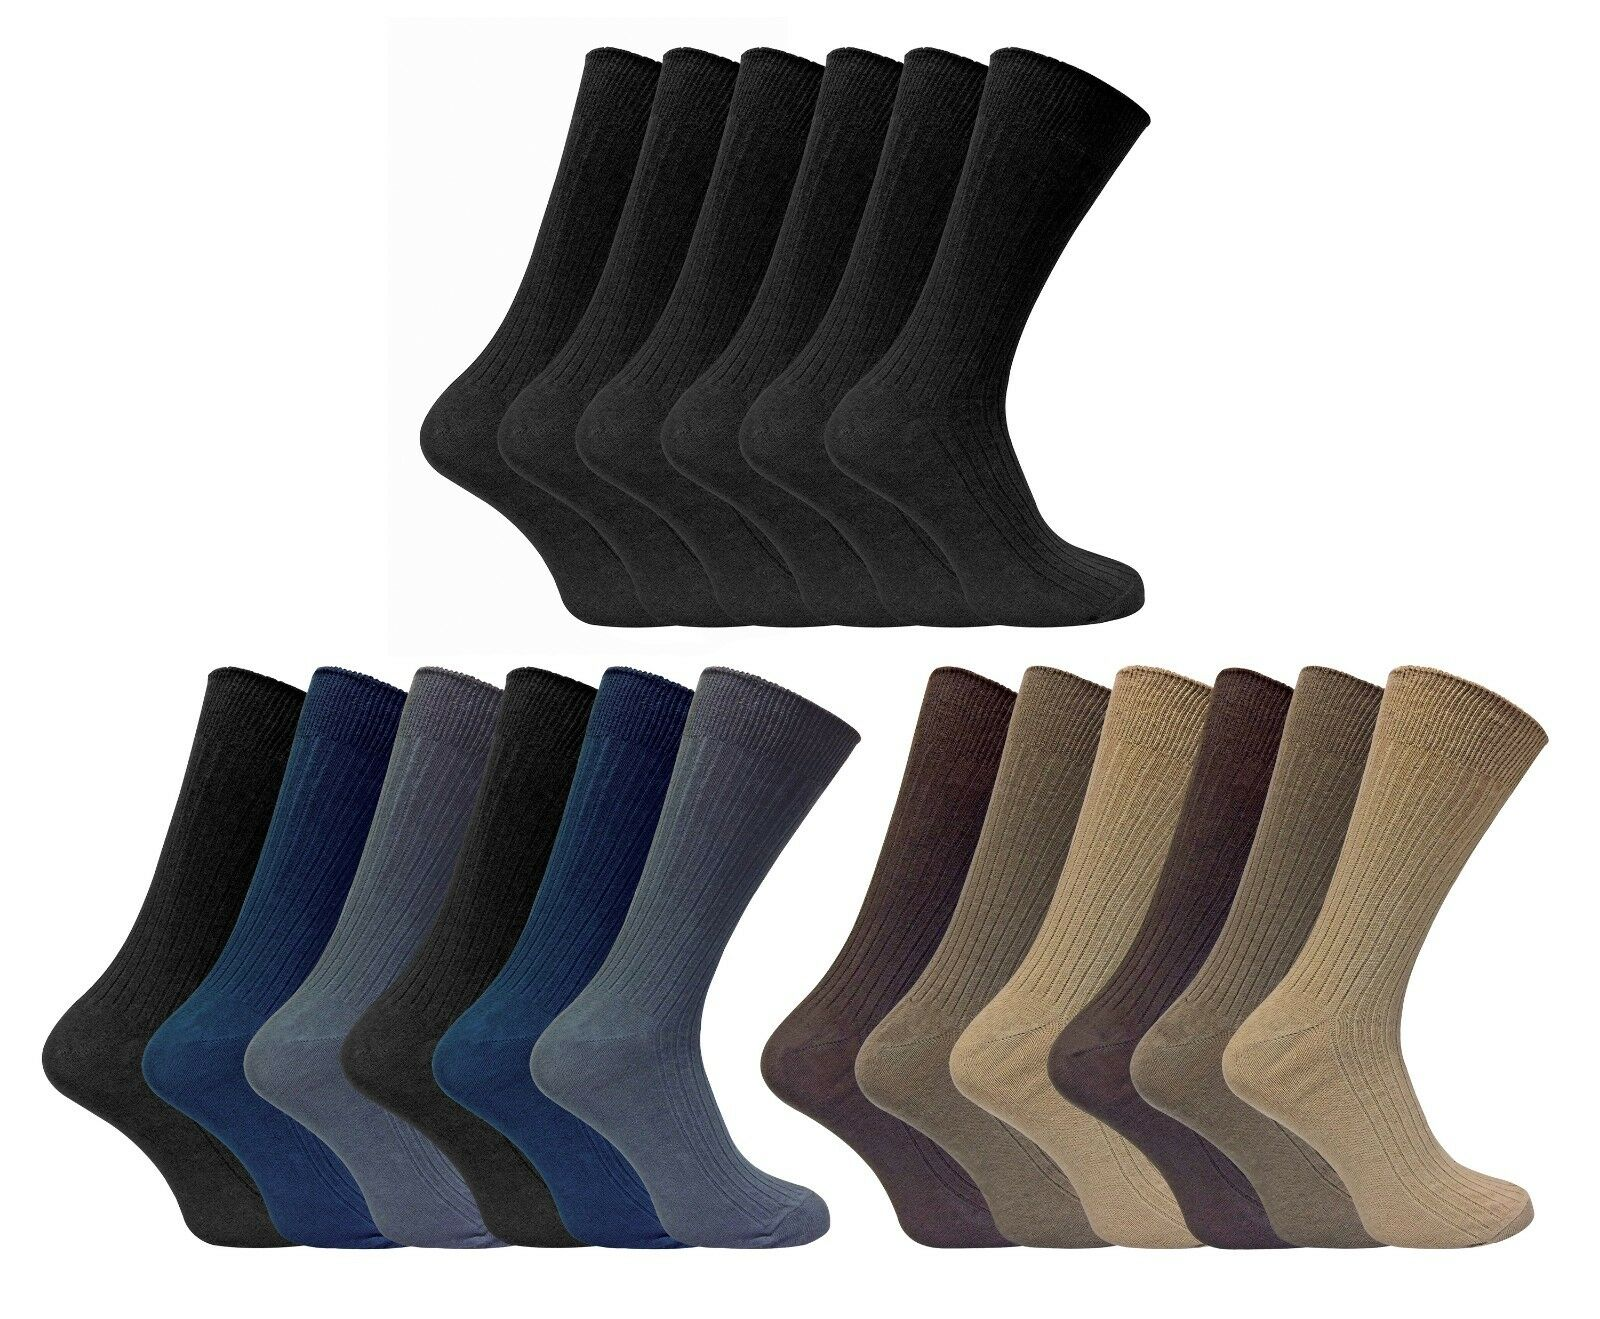 Men/'s Socks without Elastic Extra Wide in 6er Pack with Design